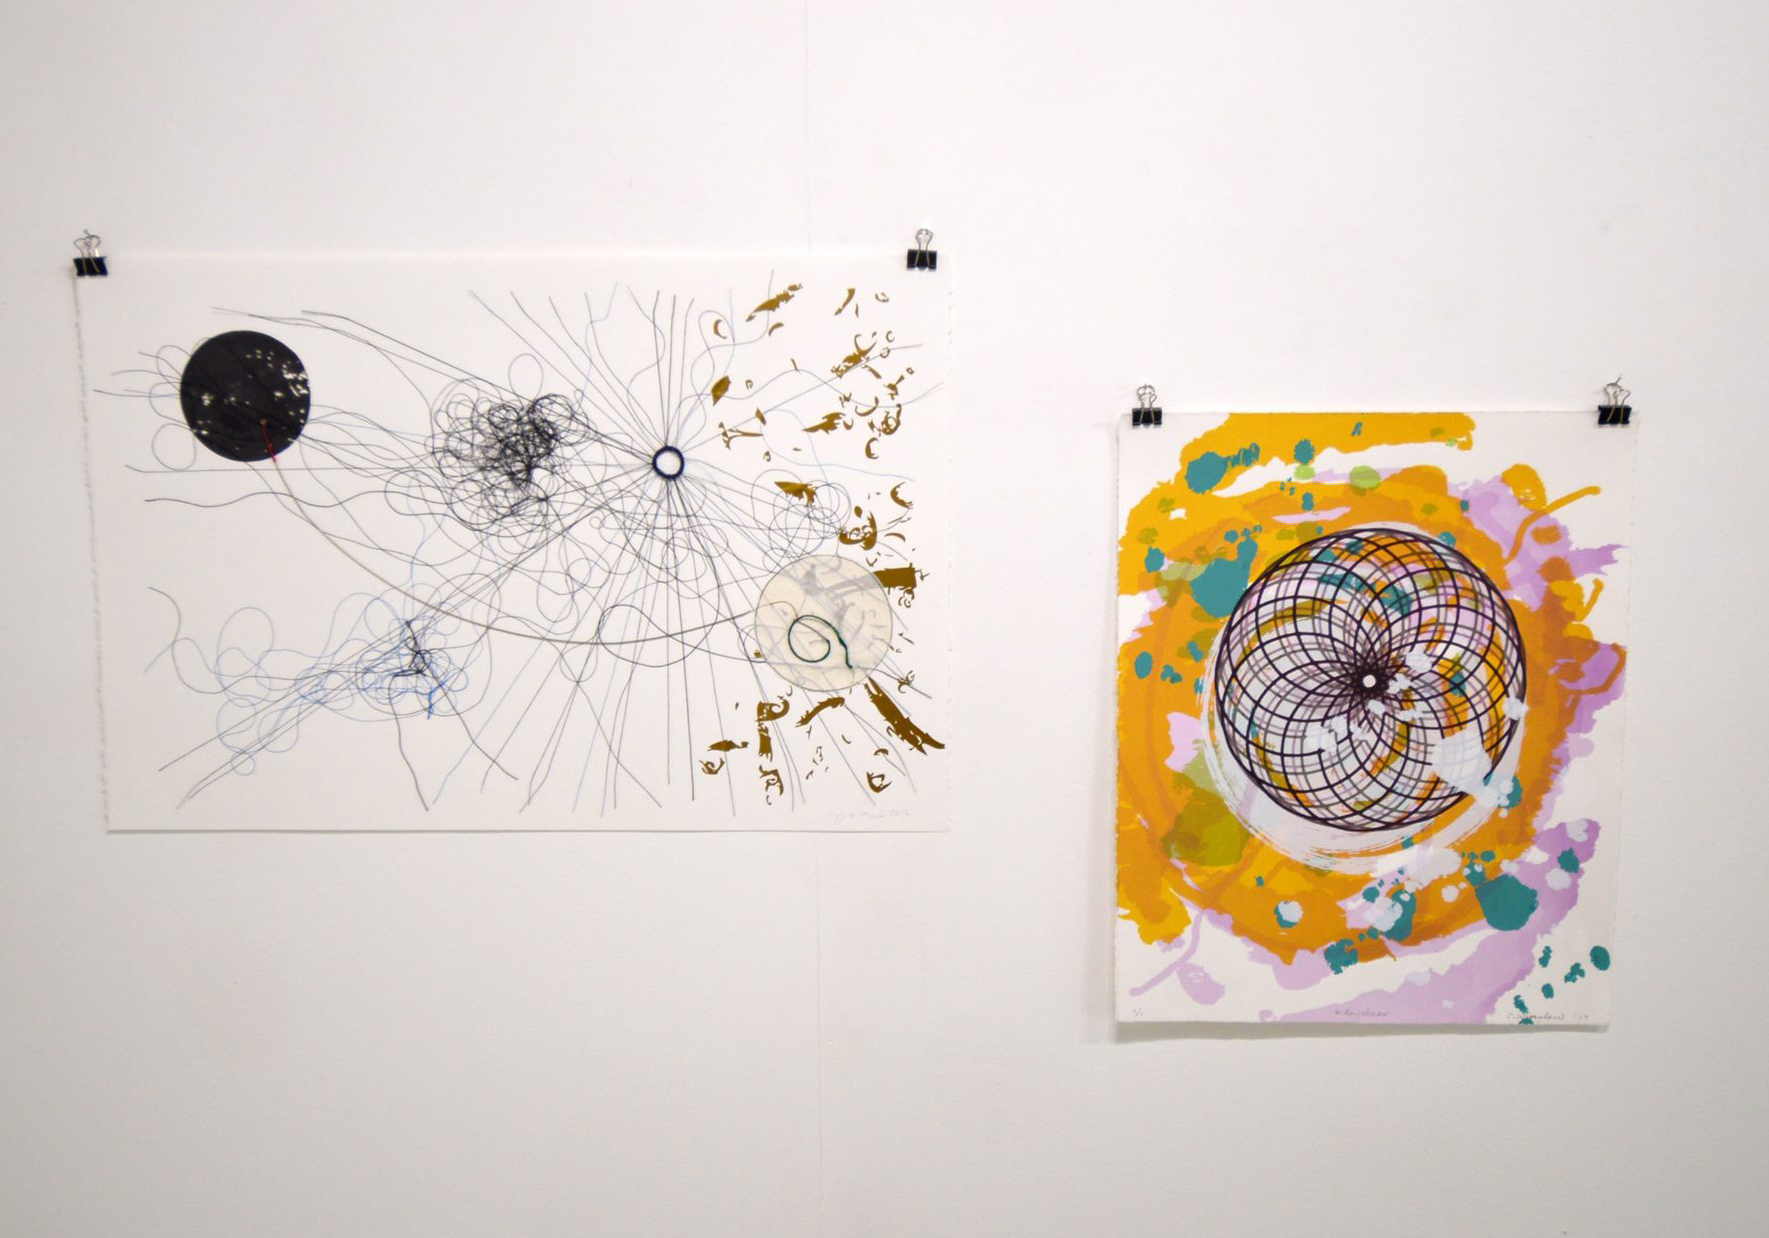 My screenprint on the right, with a piece by Julie Wills